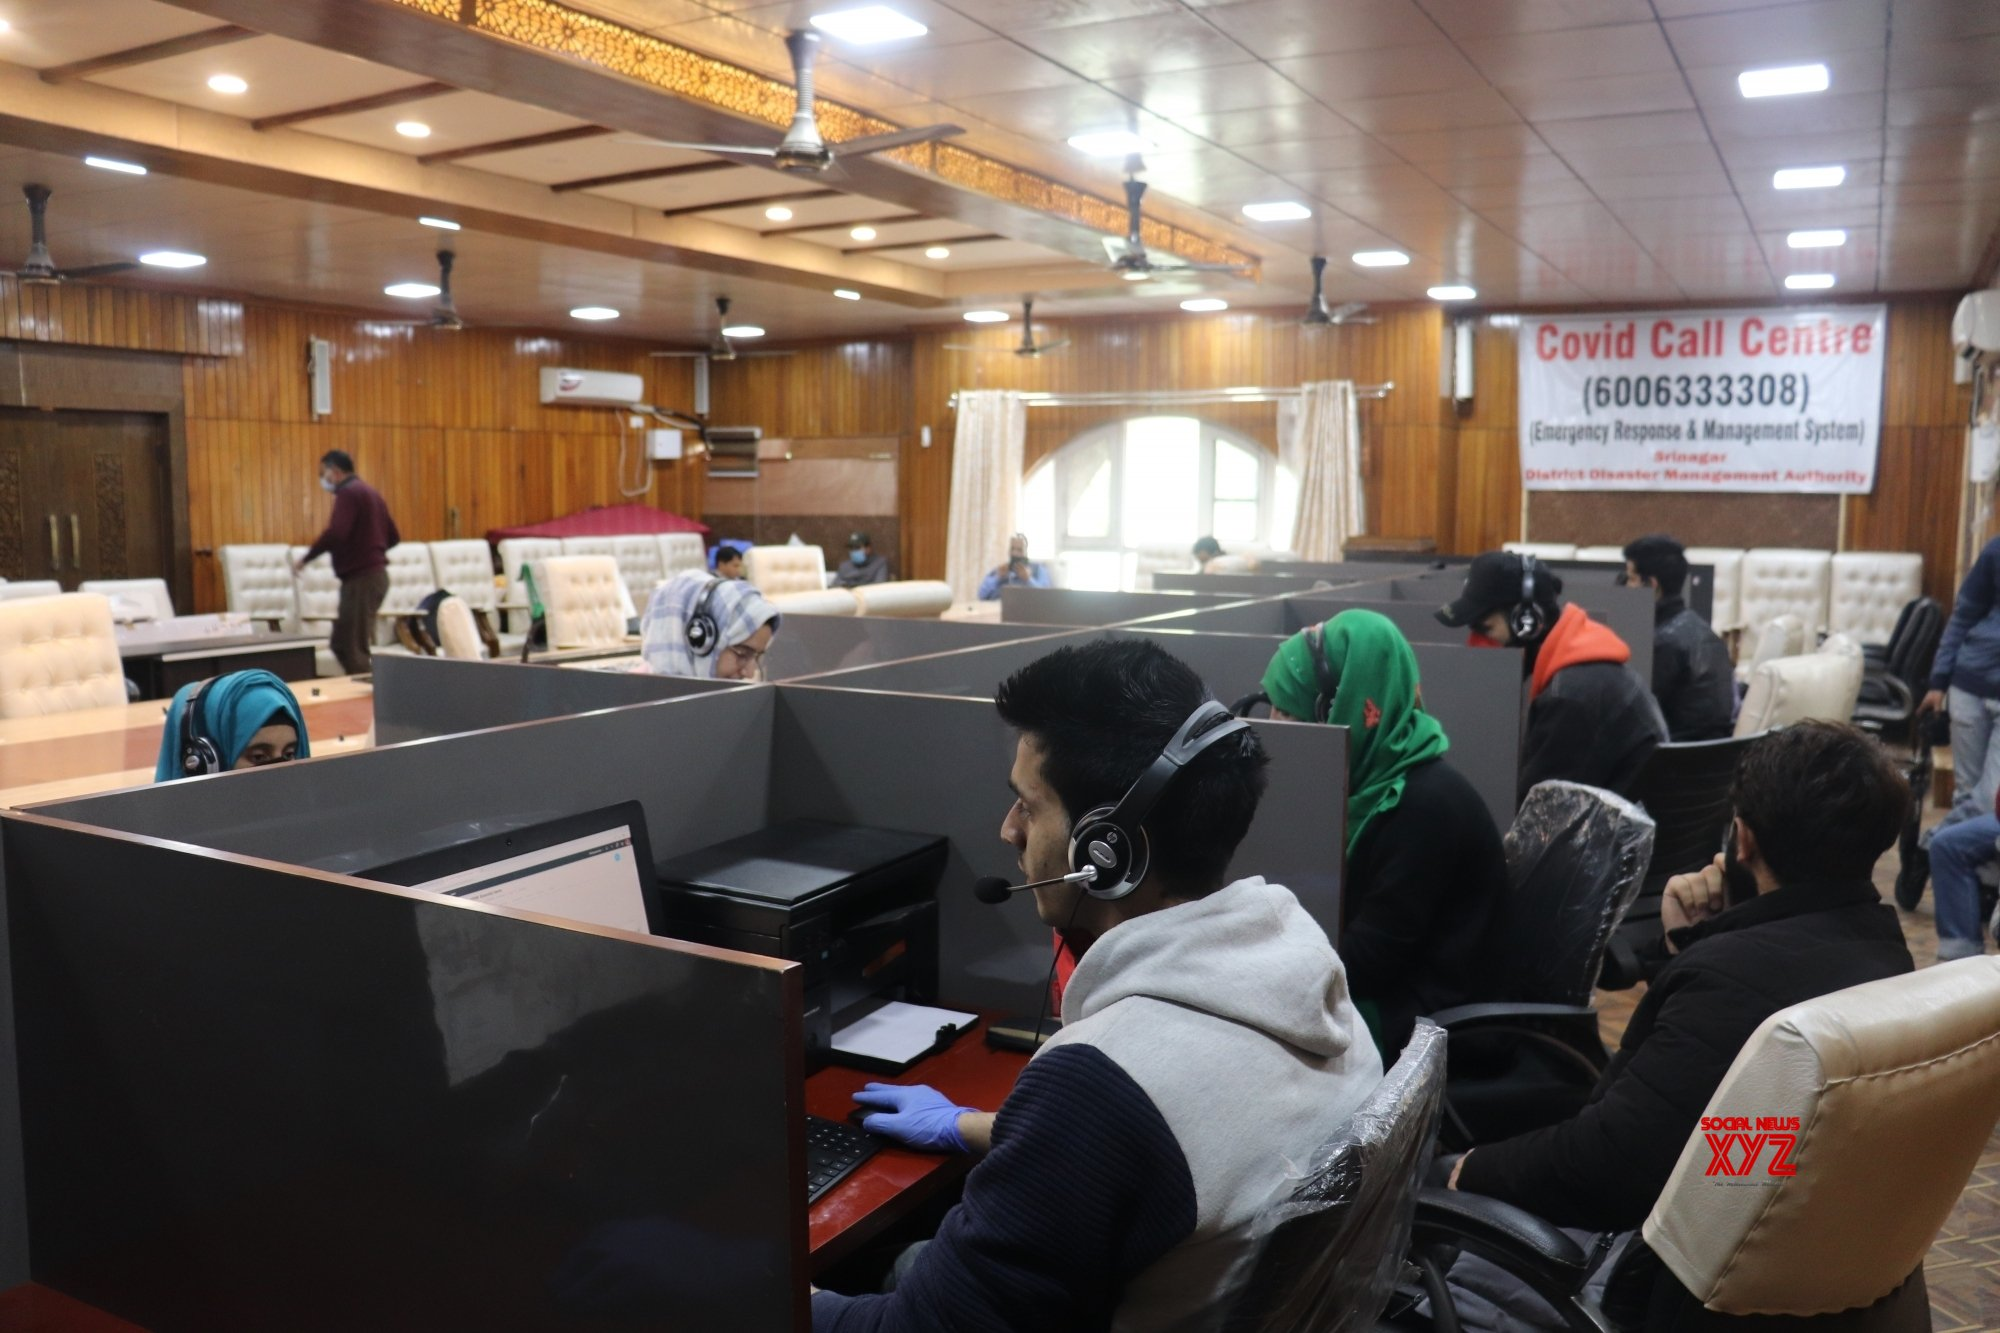 Oxygen War Rooms, Covid Control Rooms set up in J&K with sops for medical staff